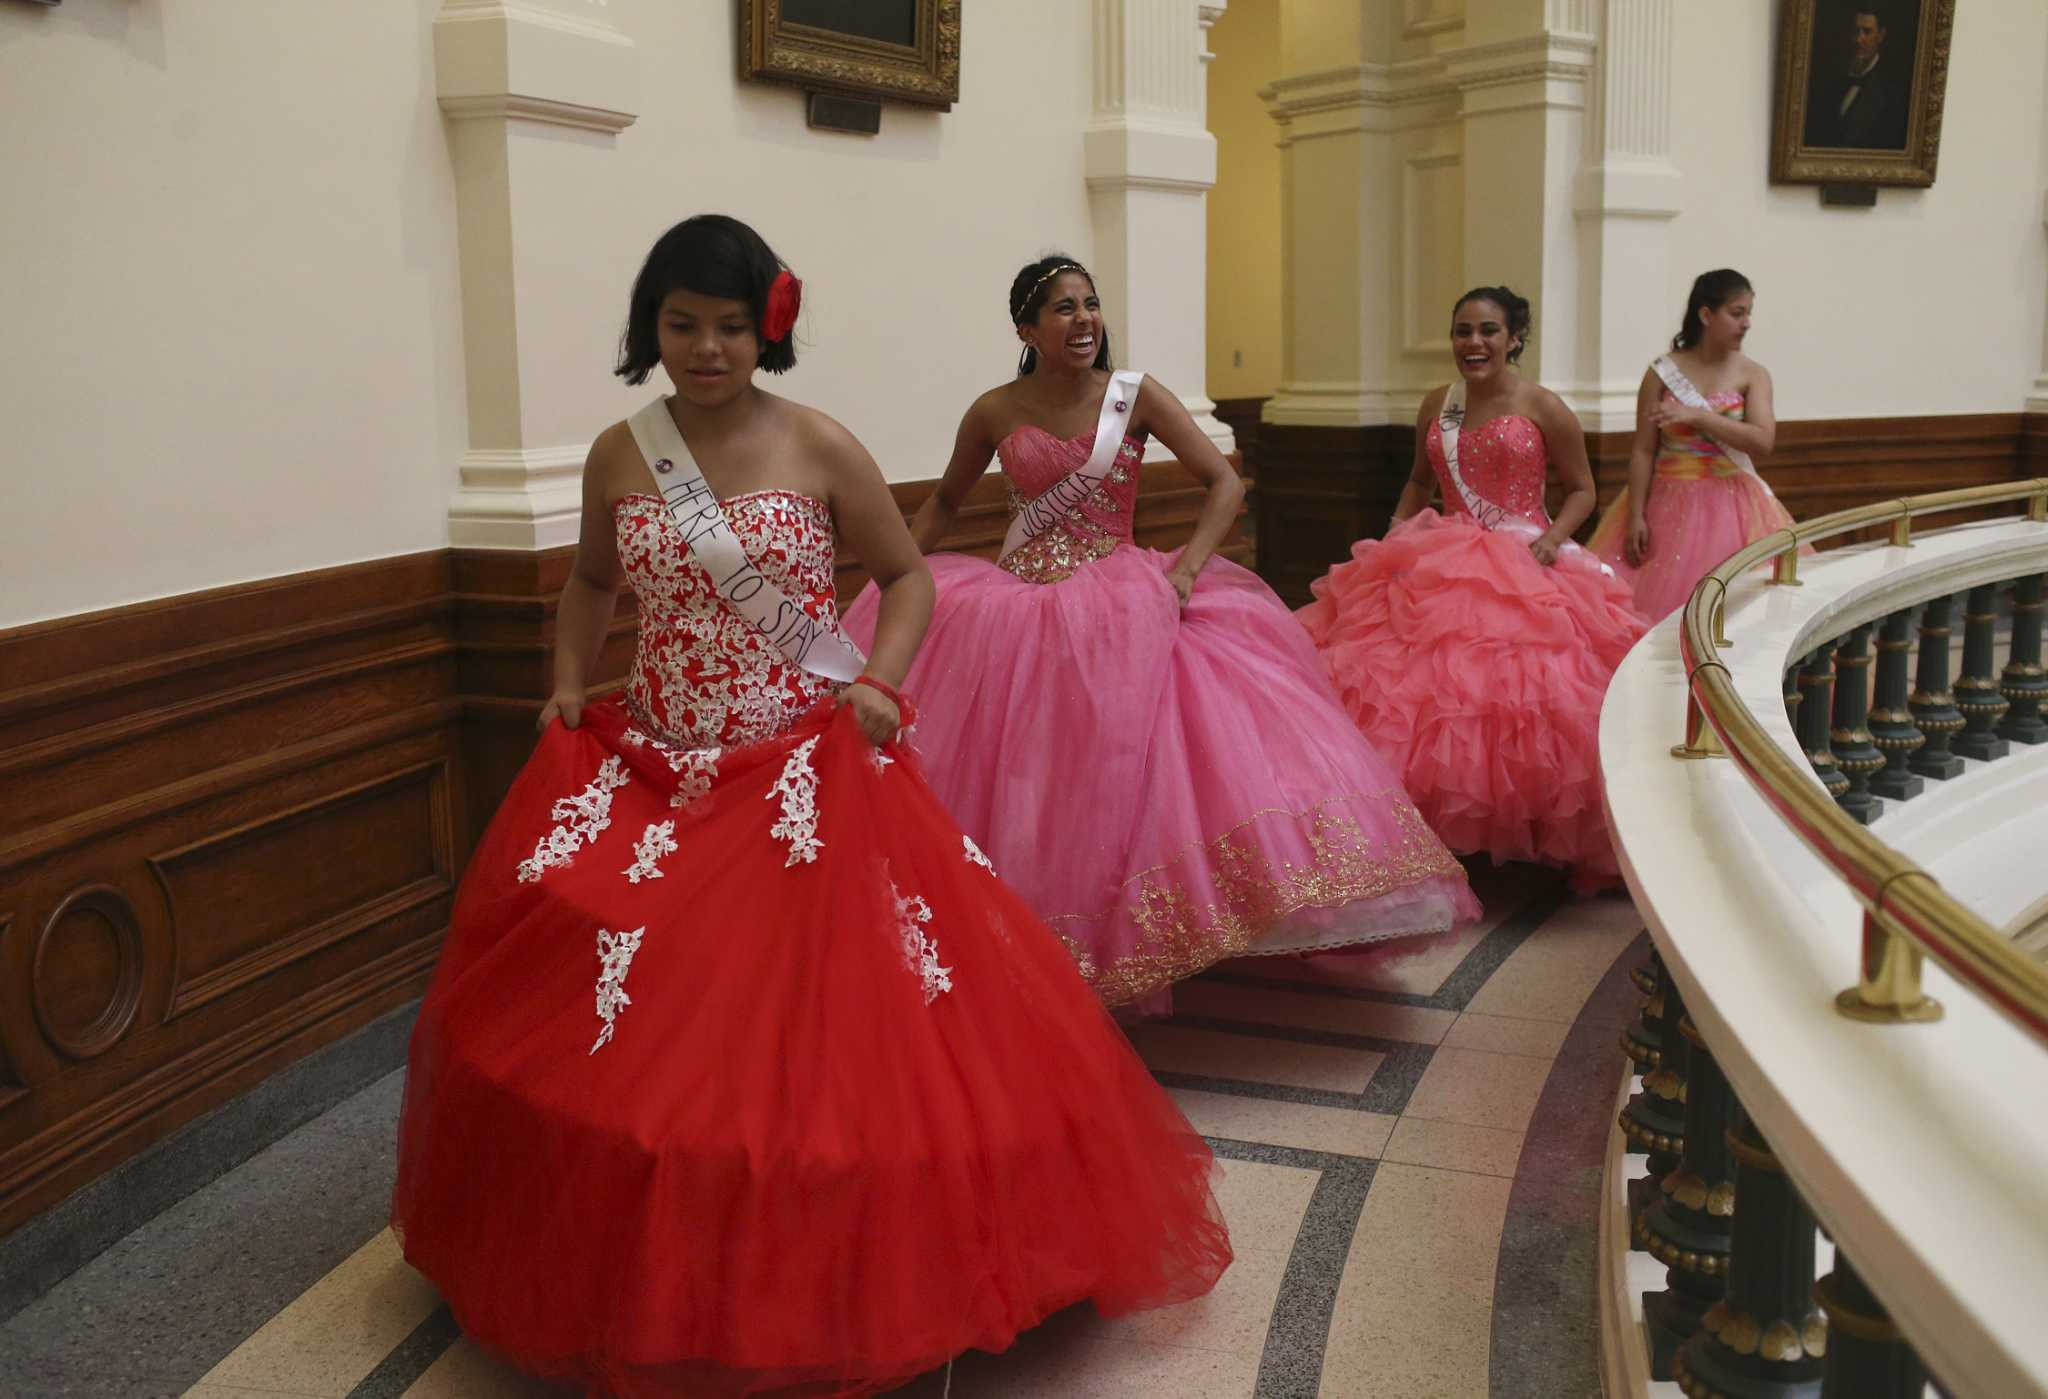 d18c1840918 Quinceañeras dance at the Capitol to protest sanctuary cities law - San  Antonio Express-News